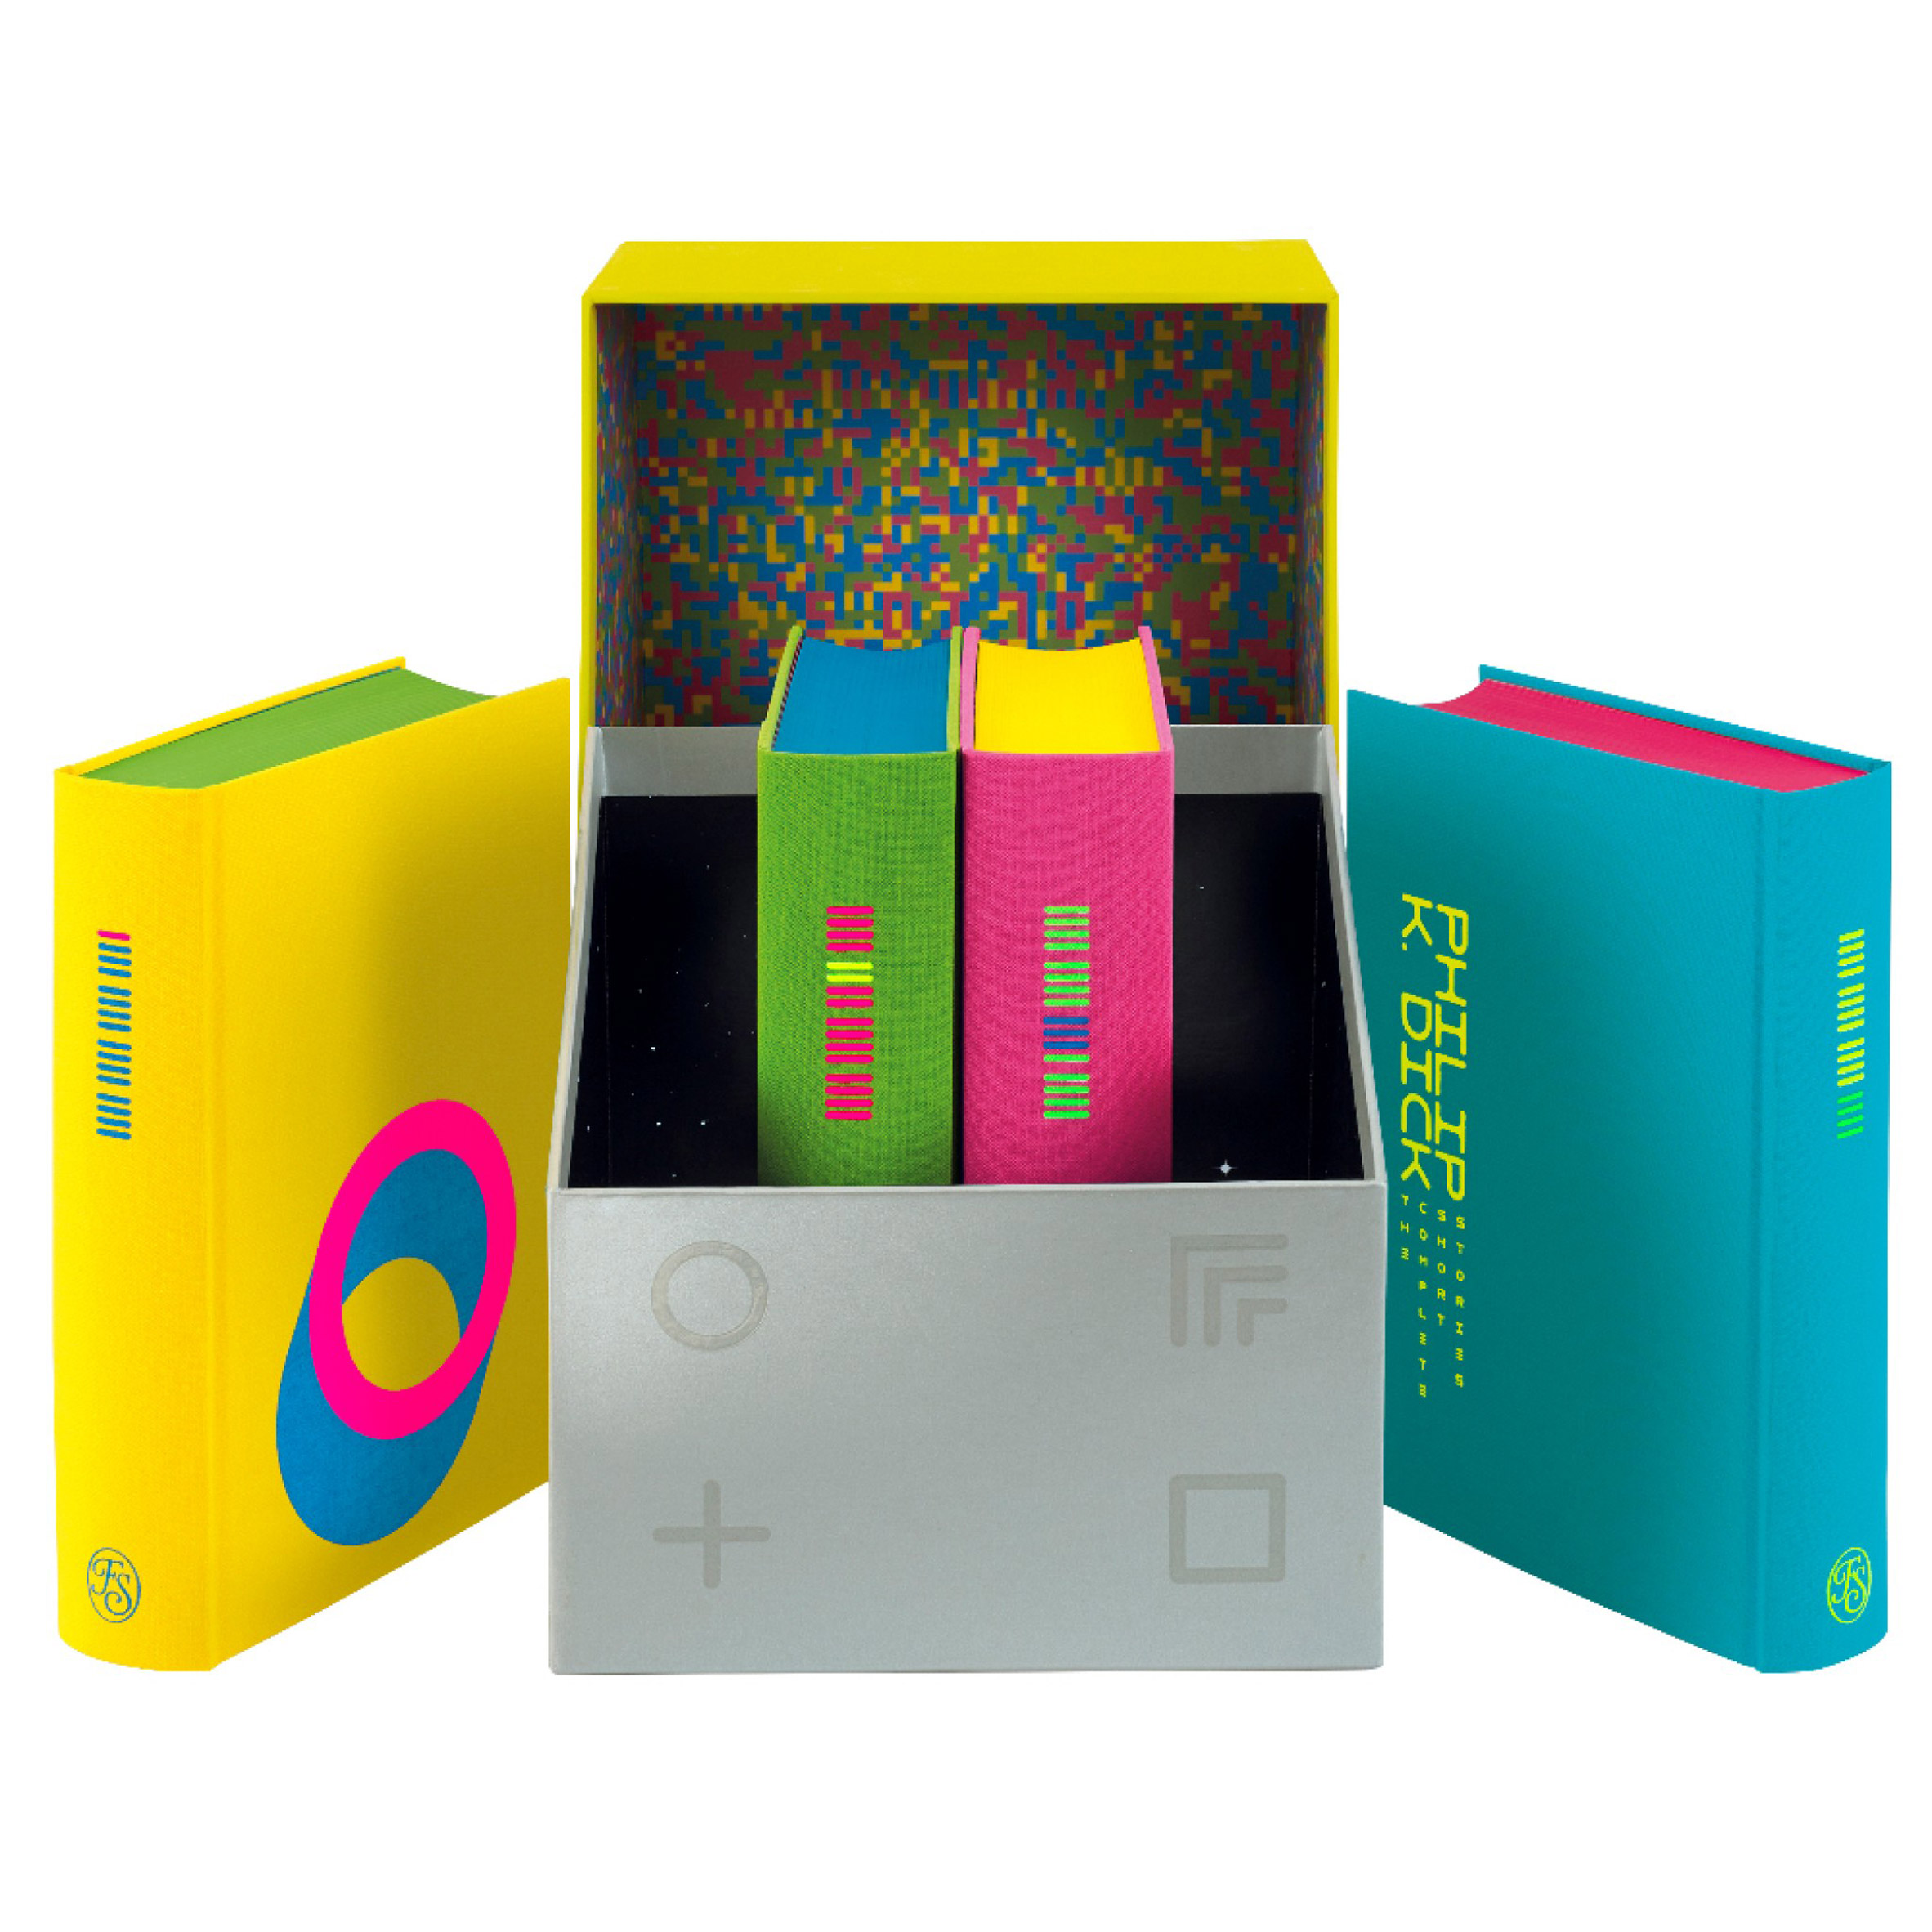 The Complete Short Stories: Philip K Dick box set by The Folio Society box open to reveal glitch patterned lining and four neon-coloured volumes